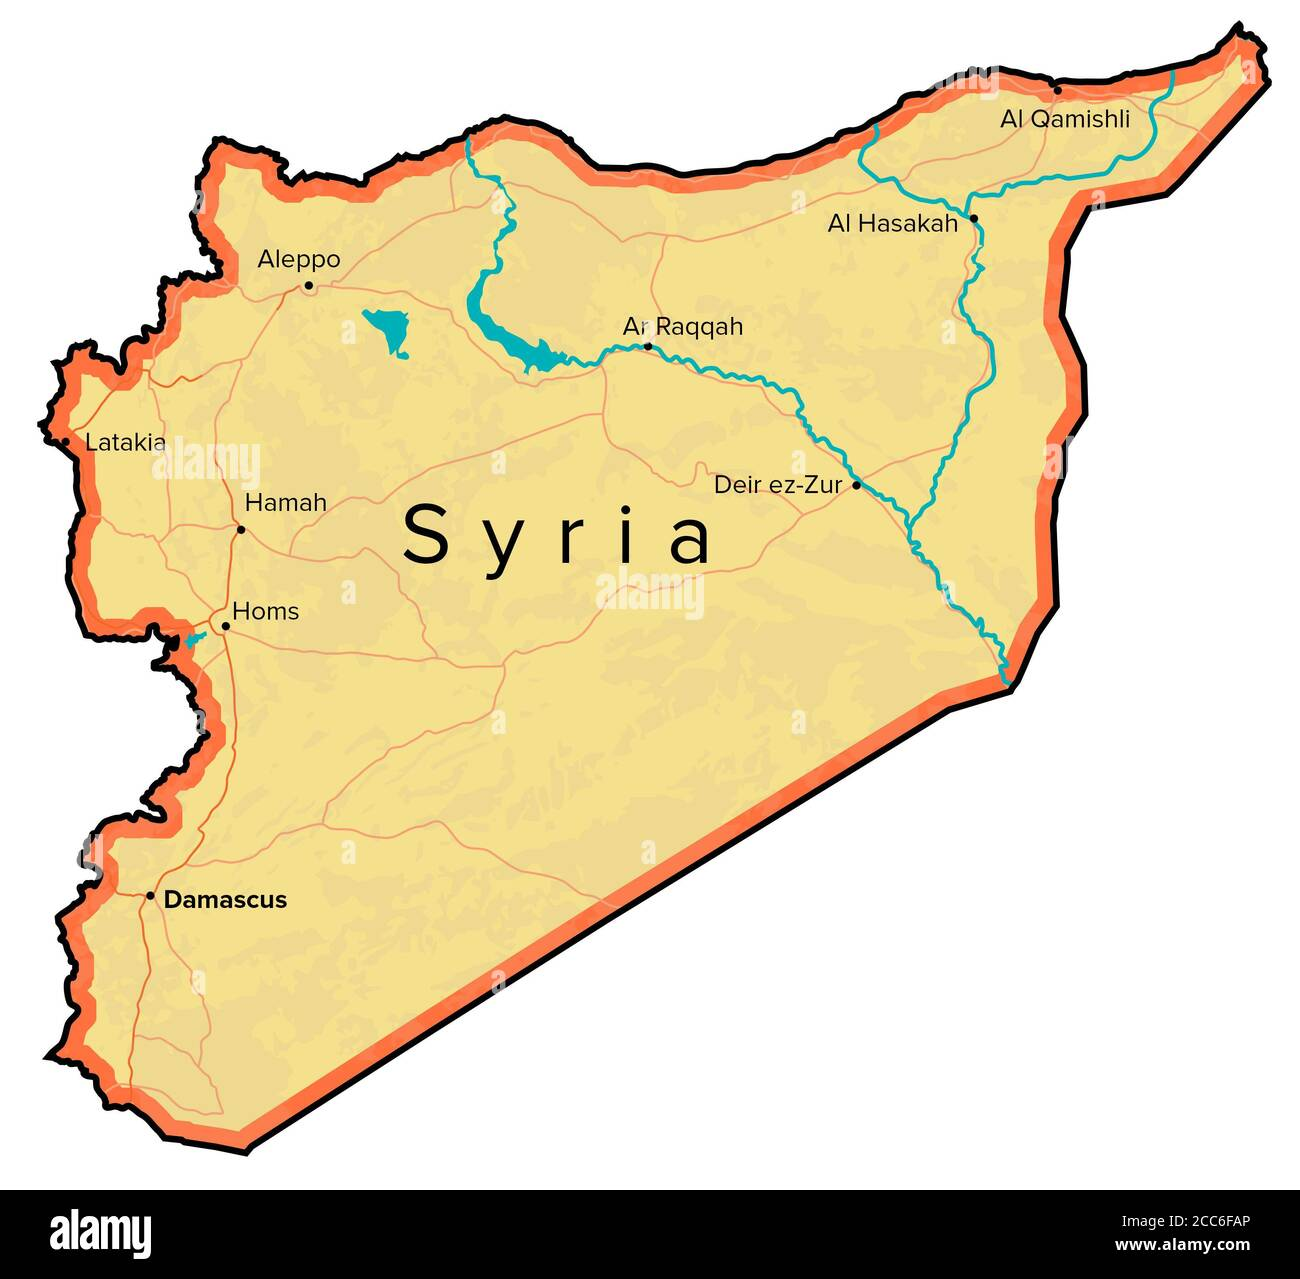 Image of: Syria Map Rivers Roads And Cities Hand Drawn Map Middle East Cartography Stock Photo Alamy